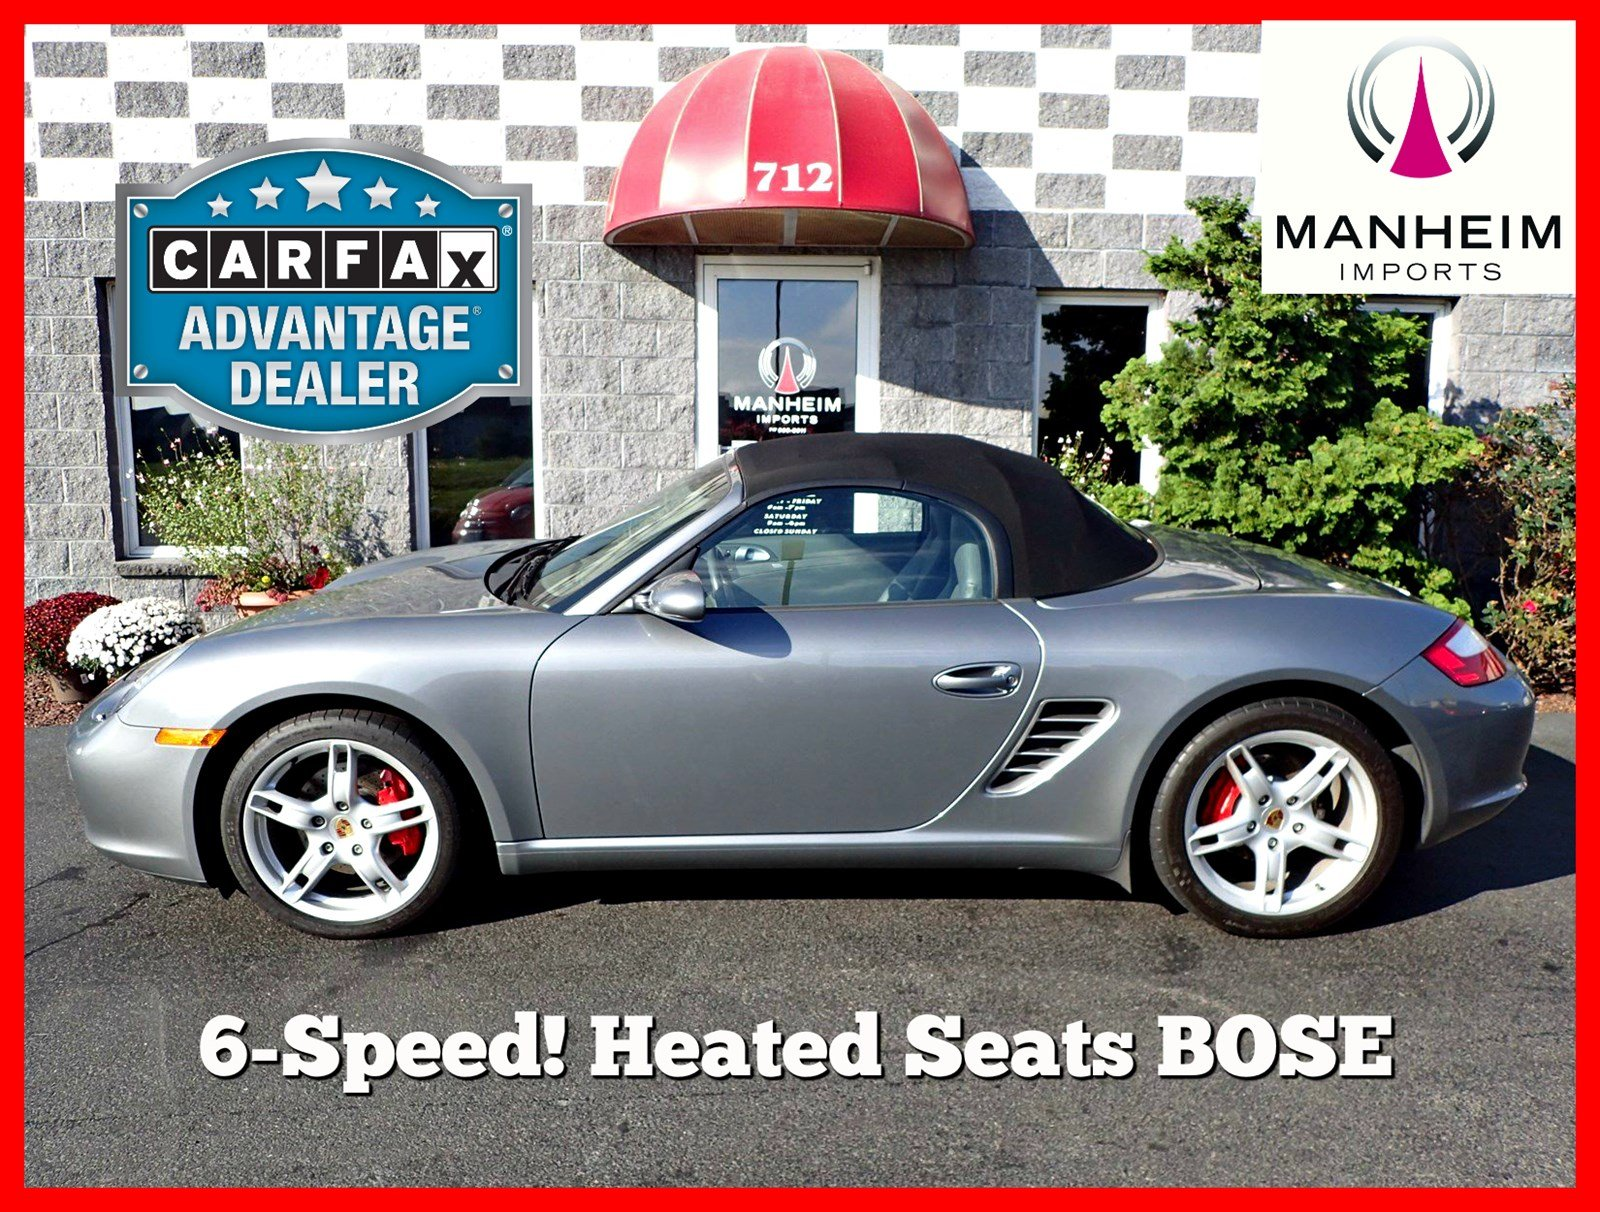 Pre-Owned 2006 Porsche Boxster S 6 Speed